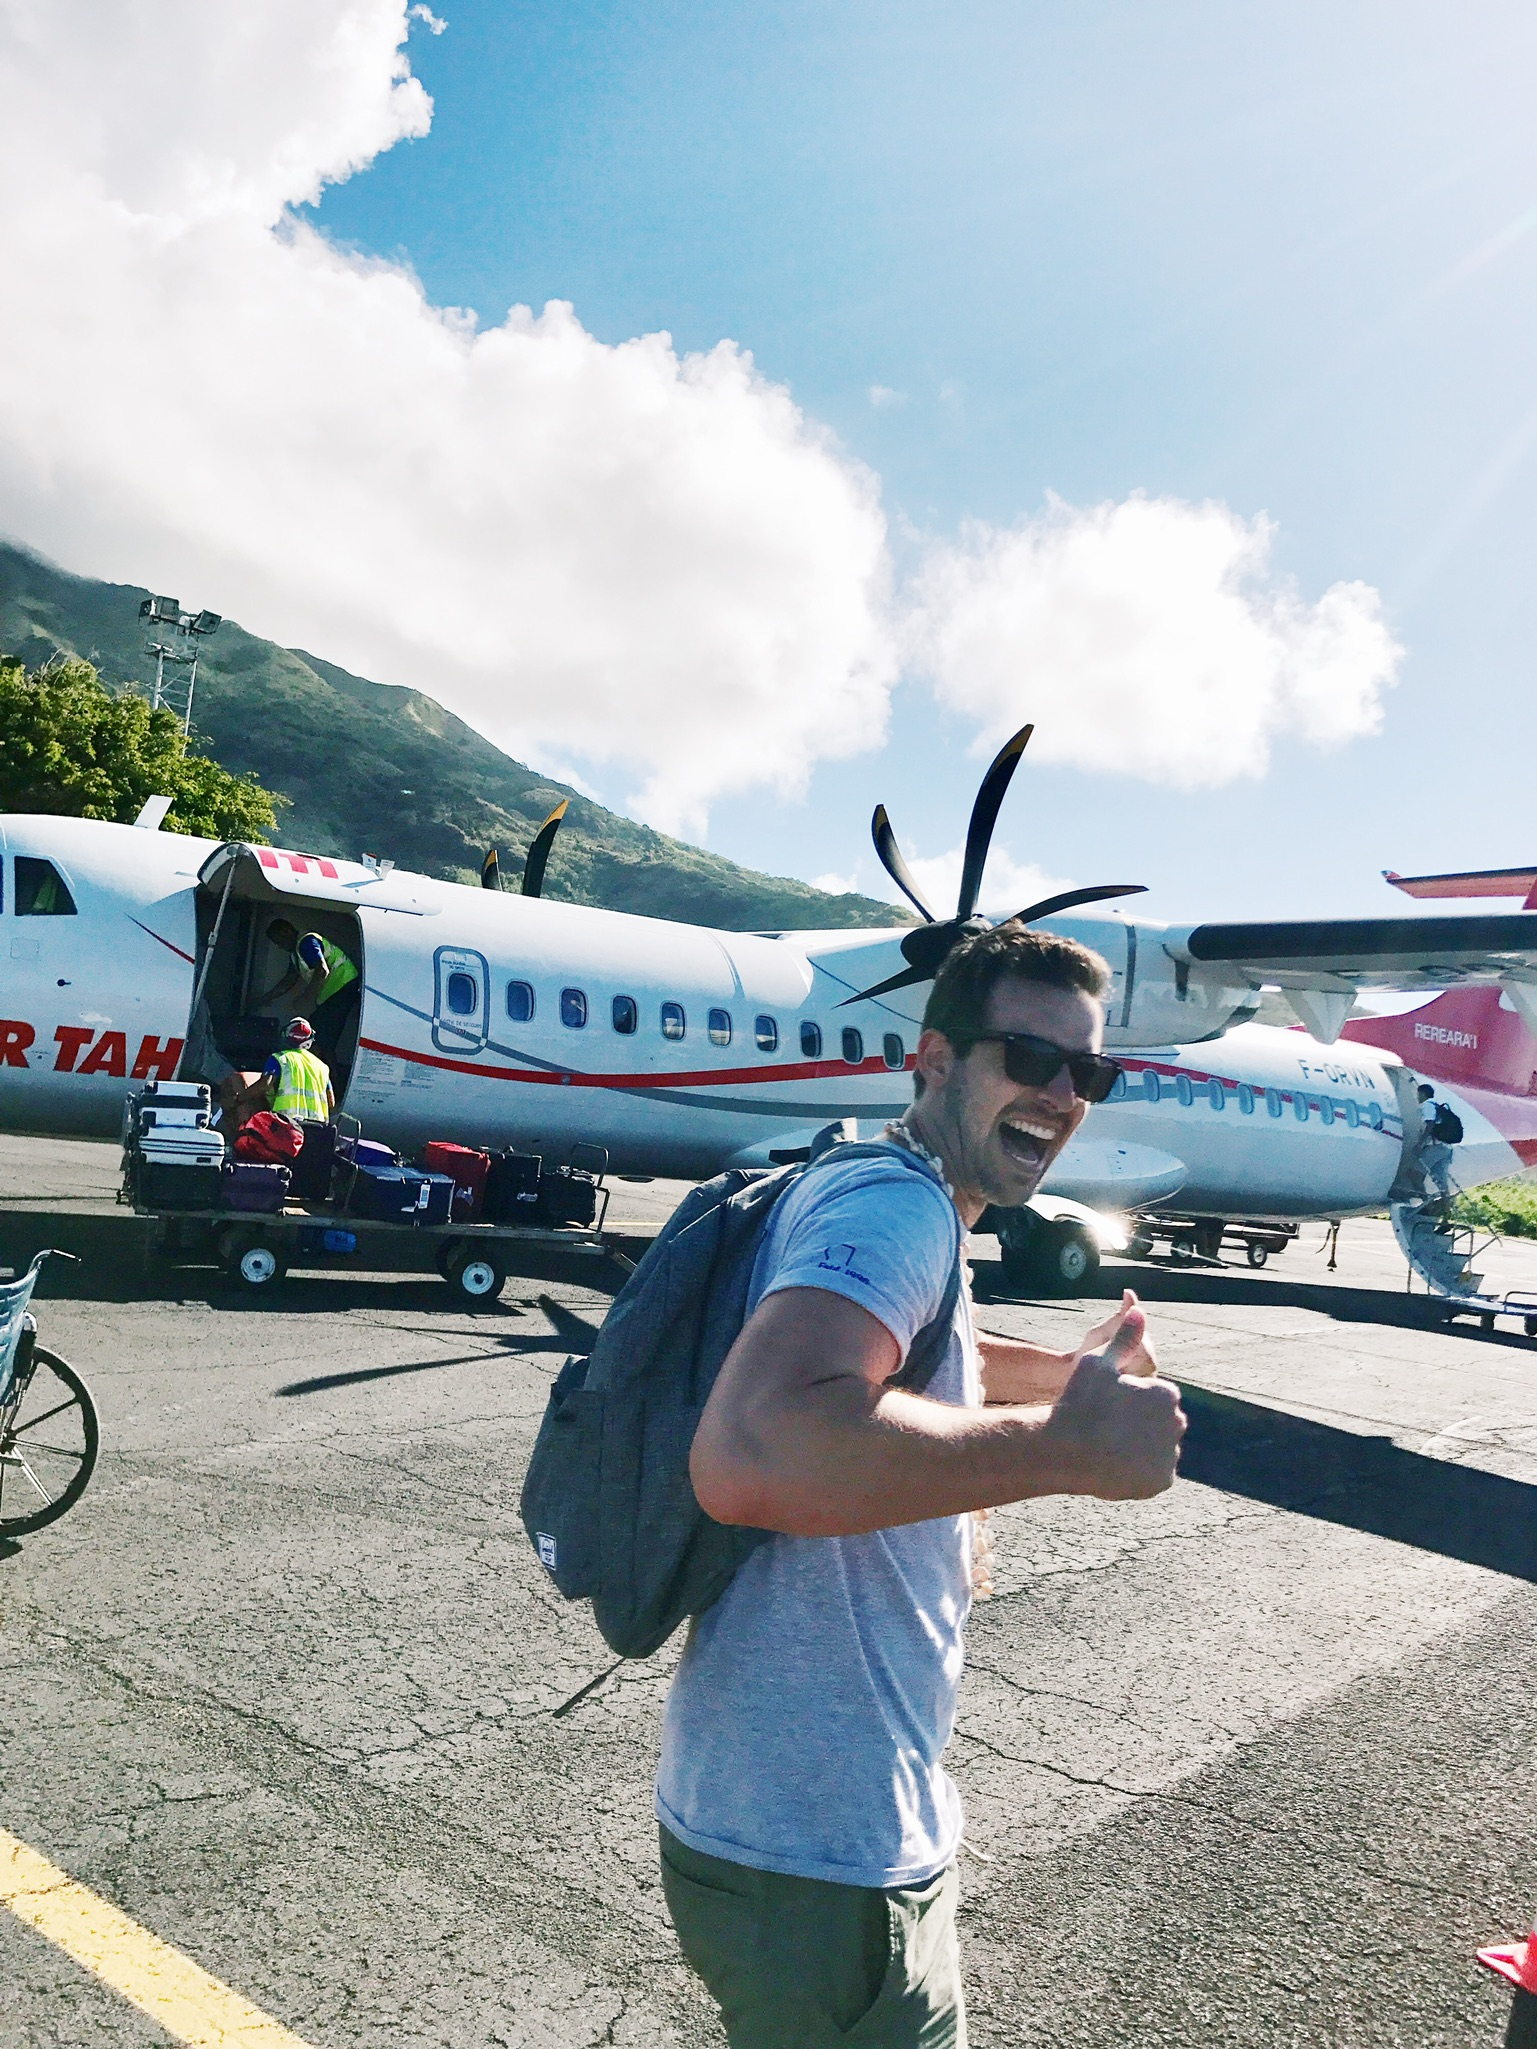 Bora Bora bound! - The only time my husband was excited to board a small plane…